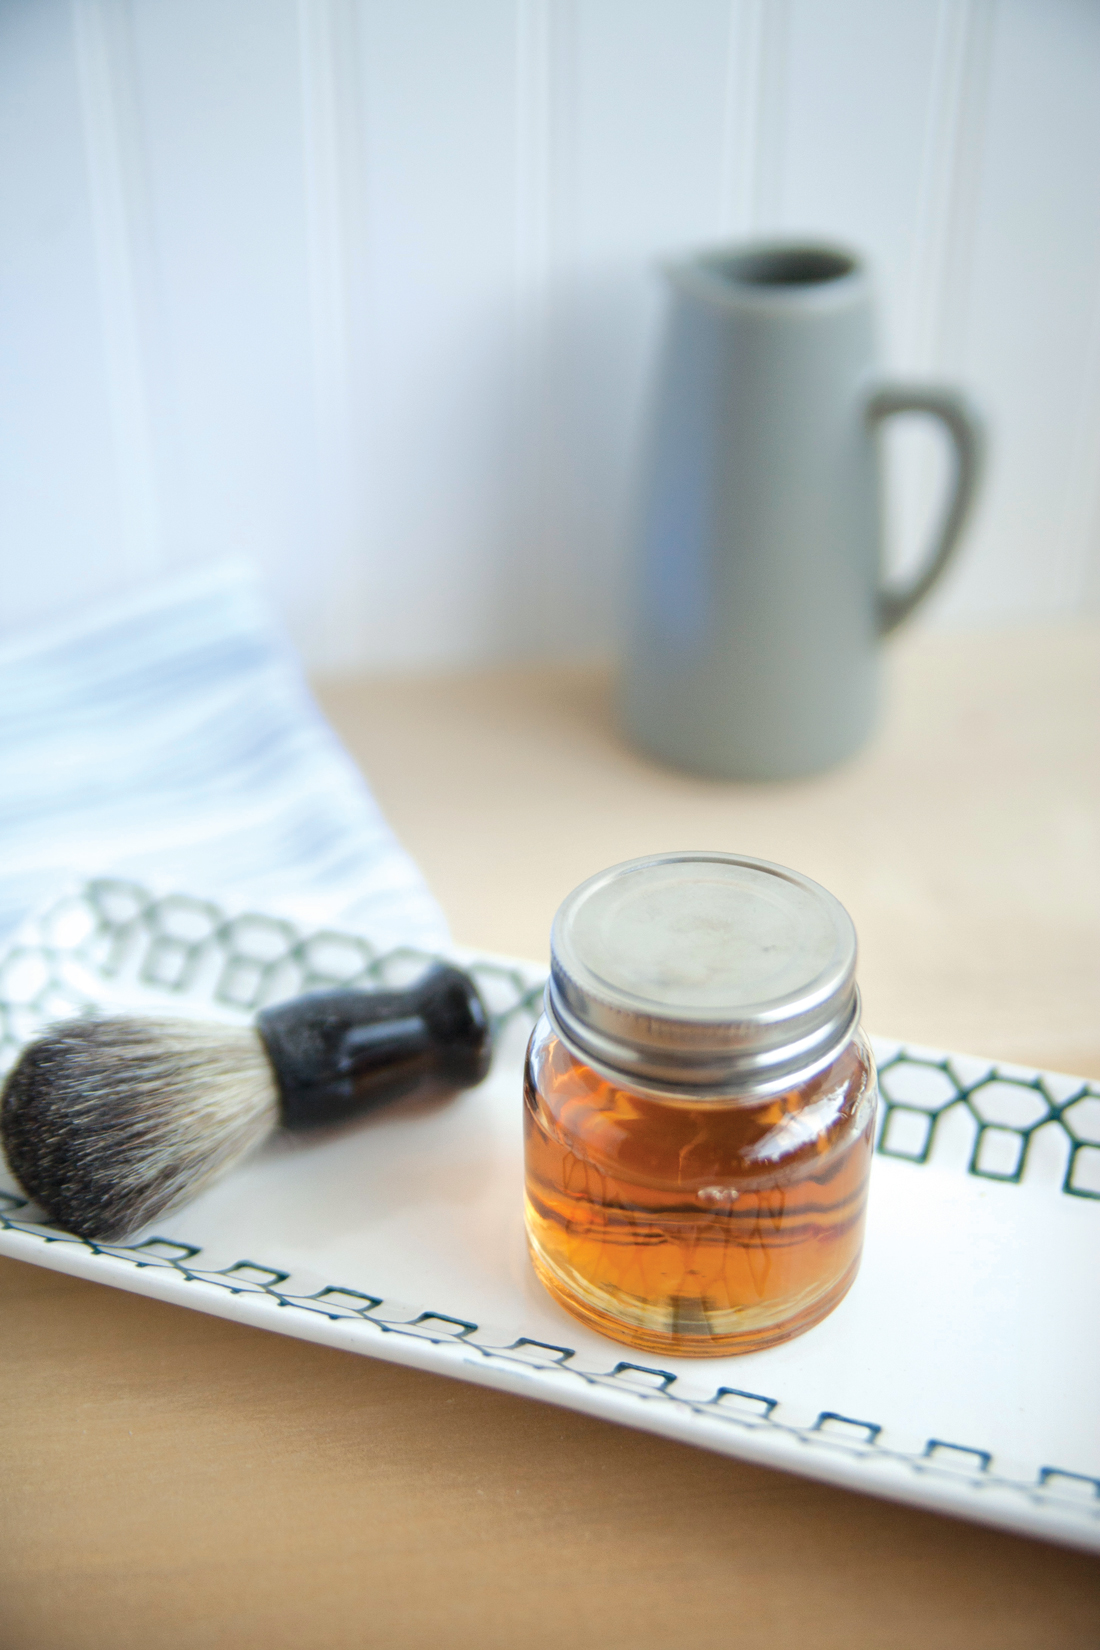 Facial brush and glass jar of golden colored beard oil.